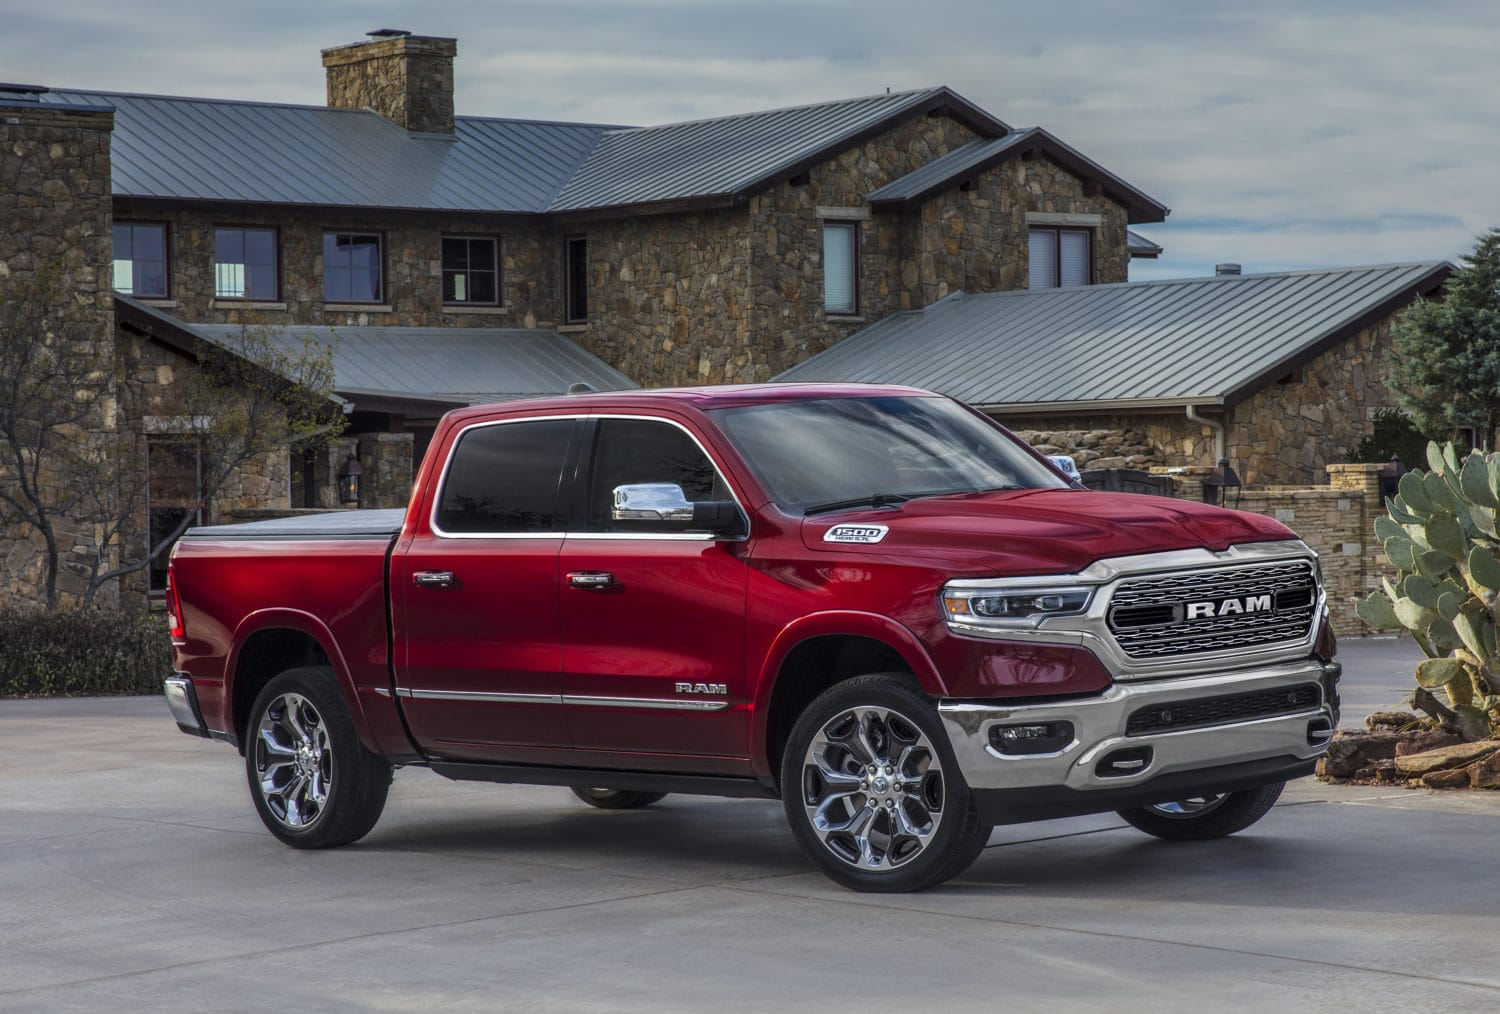 New Ram Truck >> All New 2019 Ram 1500 Made For Texans Focus Daily News